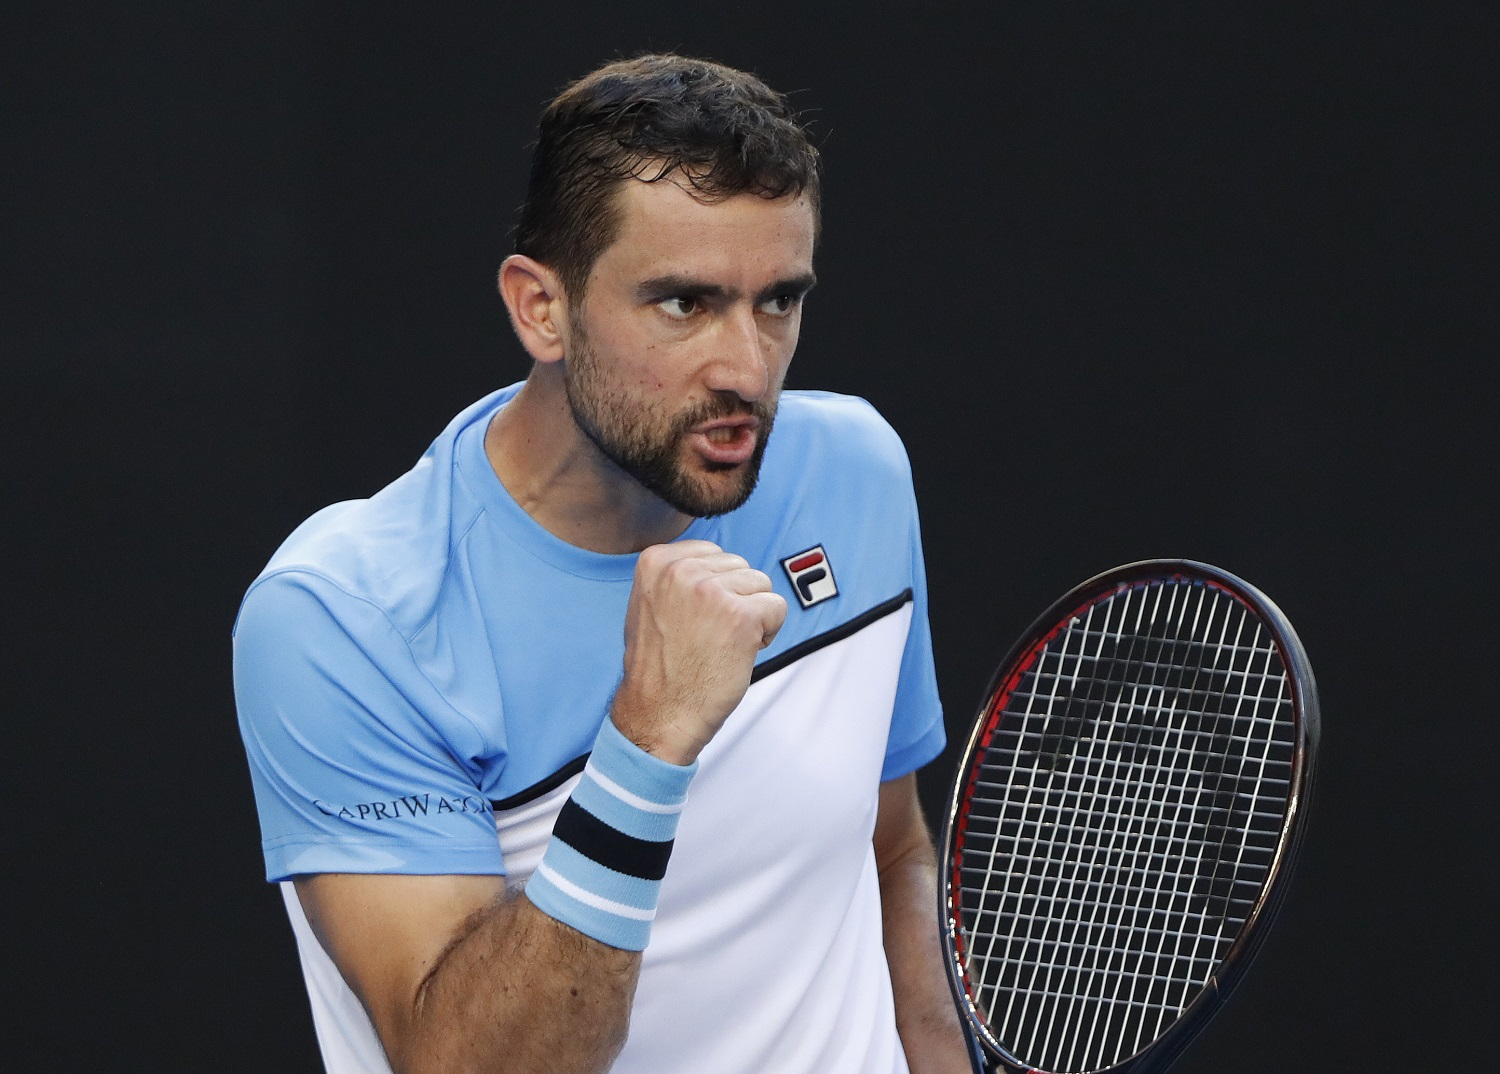 Tennis - Australian Open - Fourth Round - Melbourne Park, Melbourne, Australia, January 20, 2019. Croatias Marin Cilic gestures during the match against Spains Roberto Bautista Agut. REUTERS/Aly Song - UP1EF1K0RG43Y